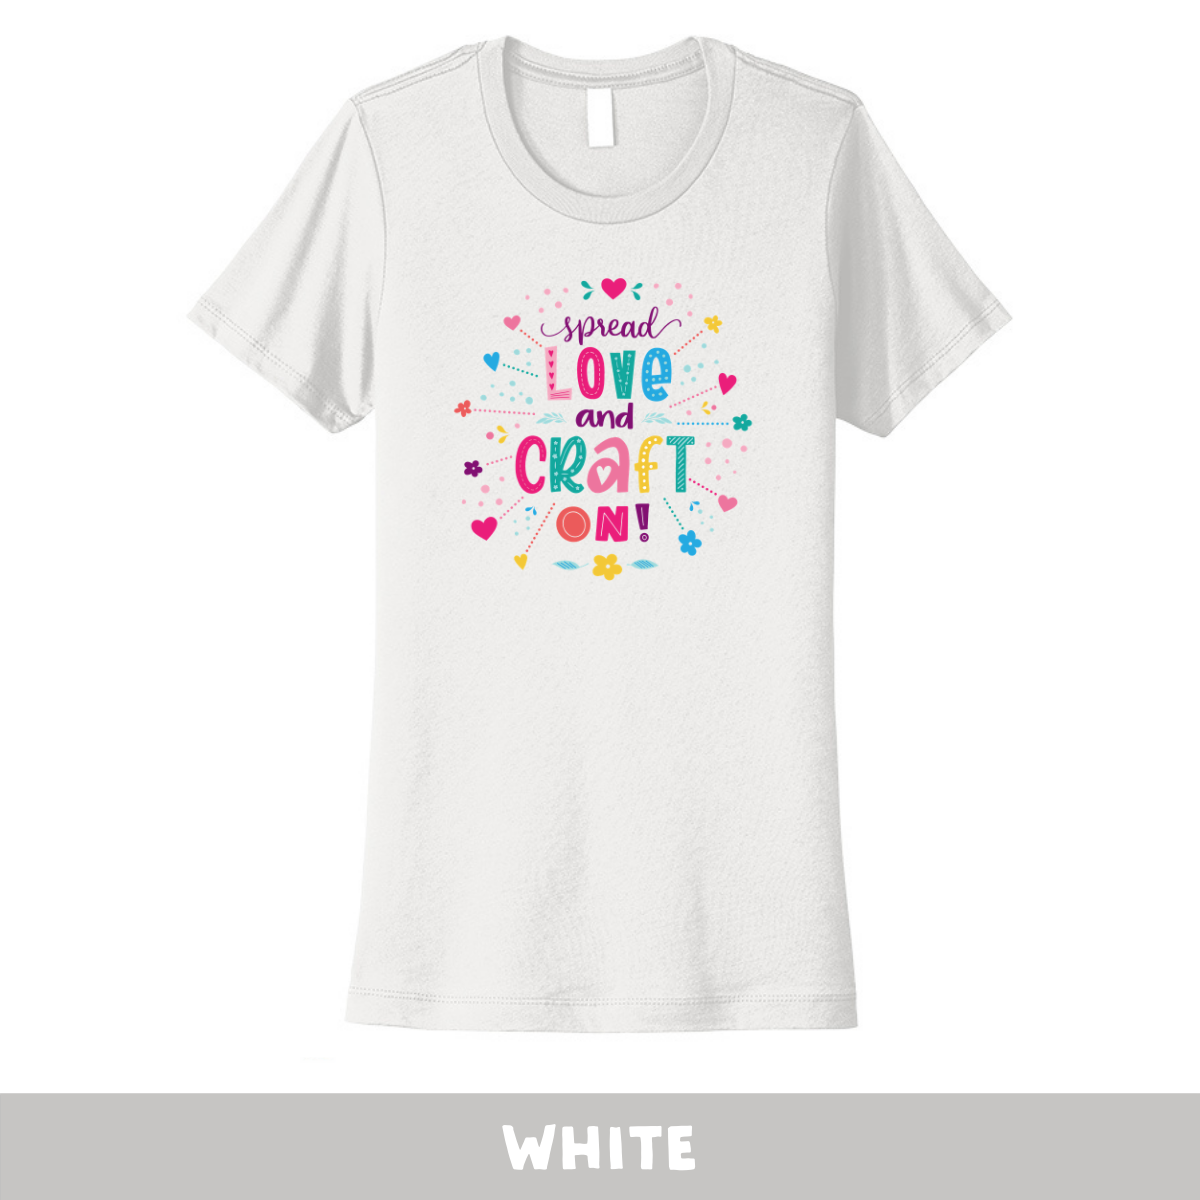 White - Crew Neck Boyfriend Tee - Spread Love and Craft On